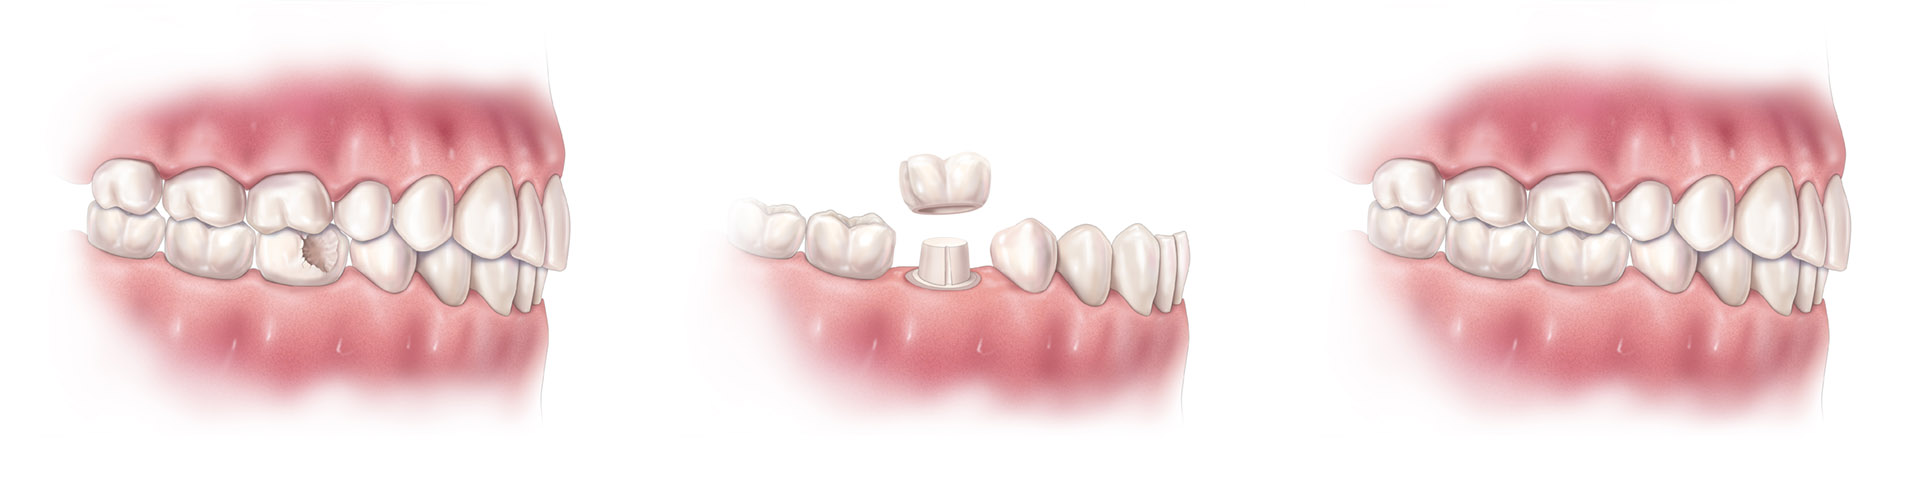 9a243a8a4b5 This illustrates how a crown can successfully replace a damaged tooth.